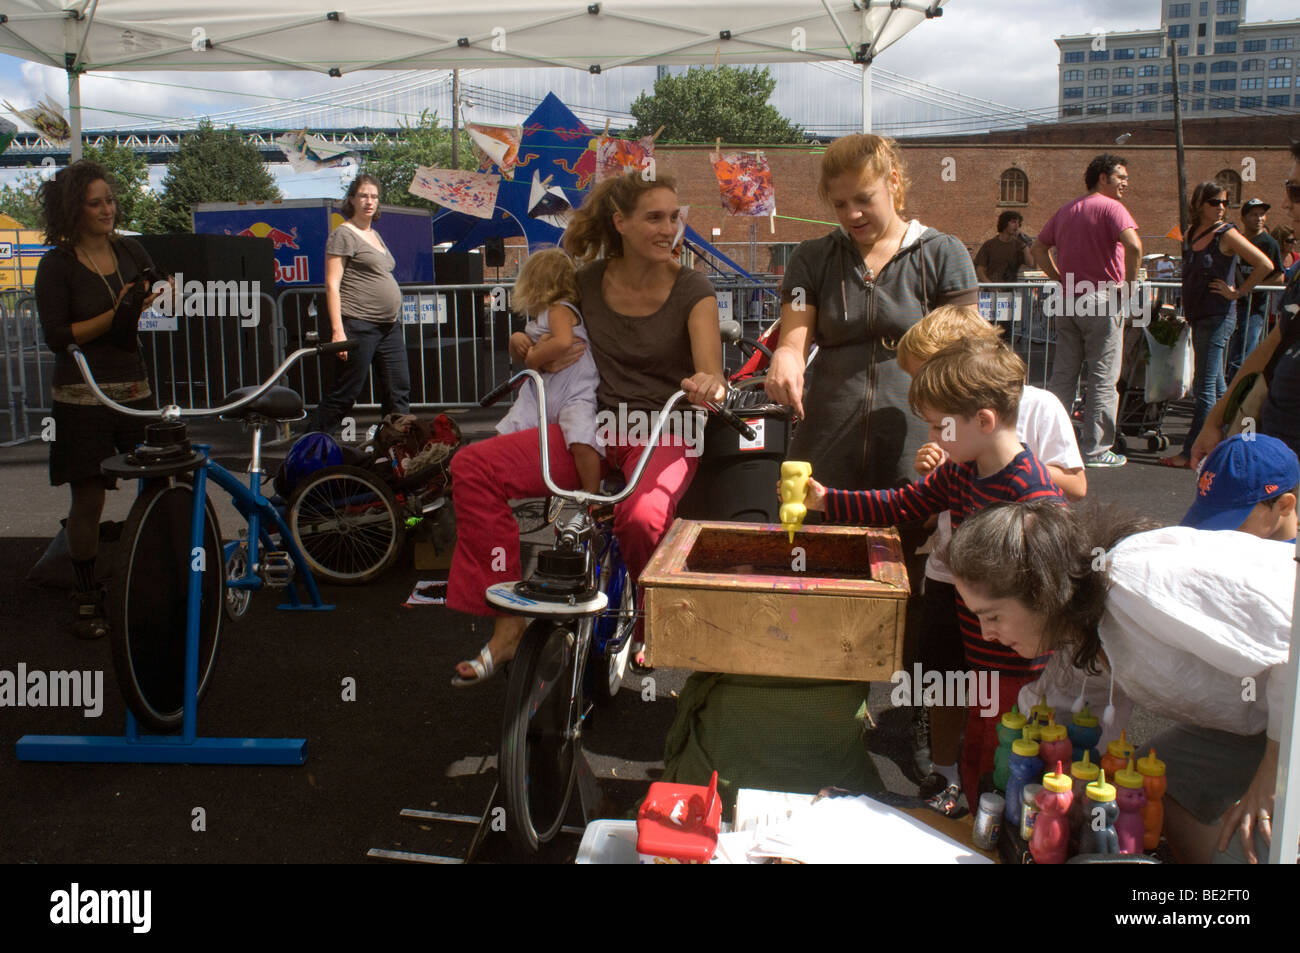 Visitors peddle furiously on a Pedal Powered Spin Art bicycle to make spin art in Brooklyn in New York - Stock Image